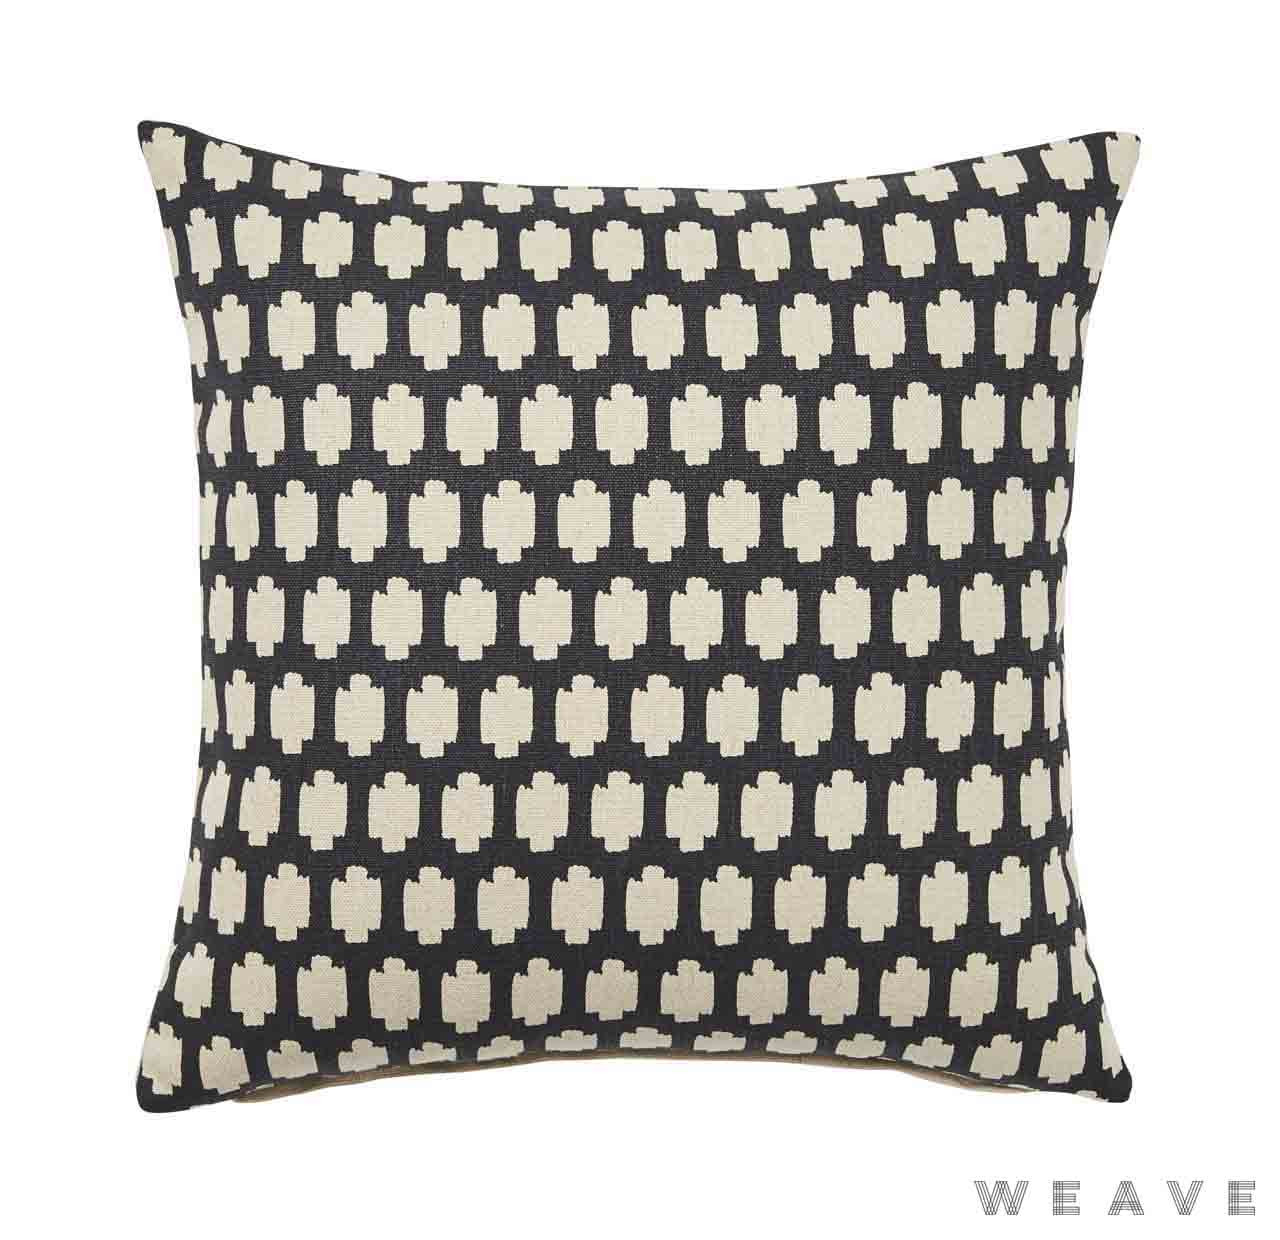 Weave - Madi Cushion - Tar (Pack of 2)  | Cushion Fabric - Black - Charcoal, Quatrefoil, Weave, Crosses